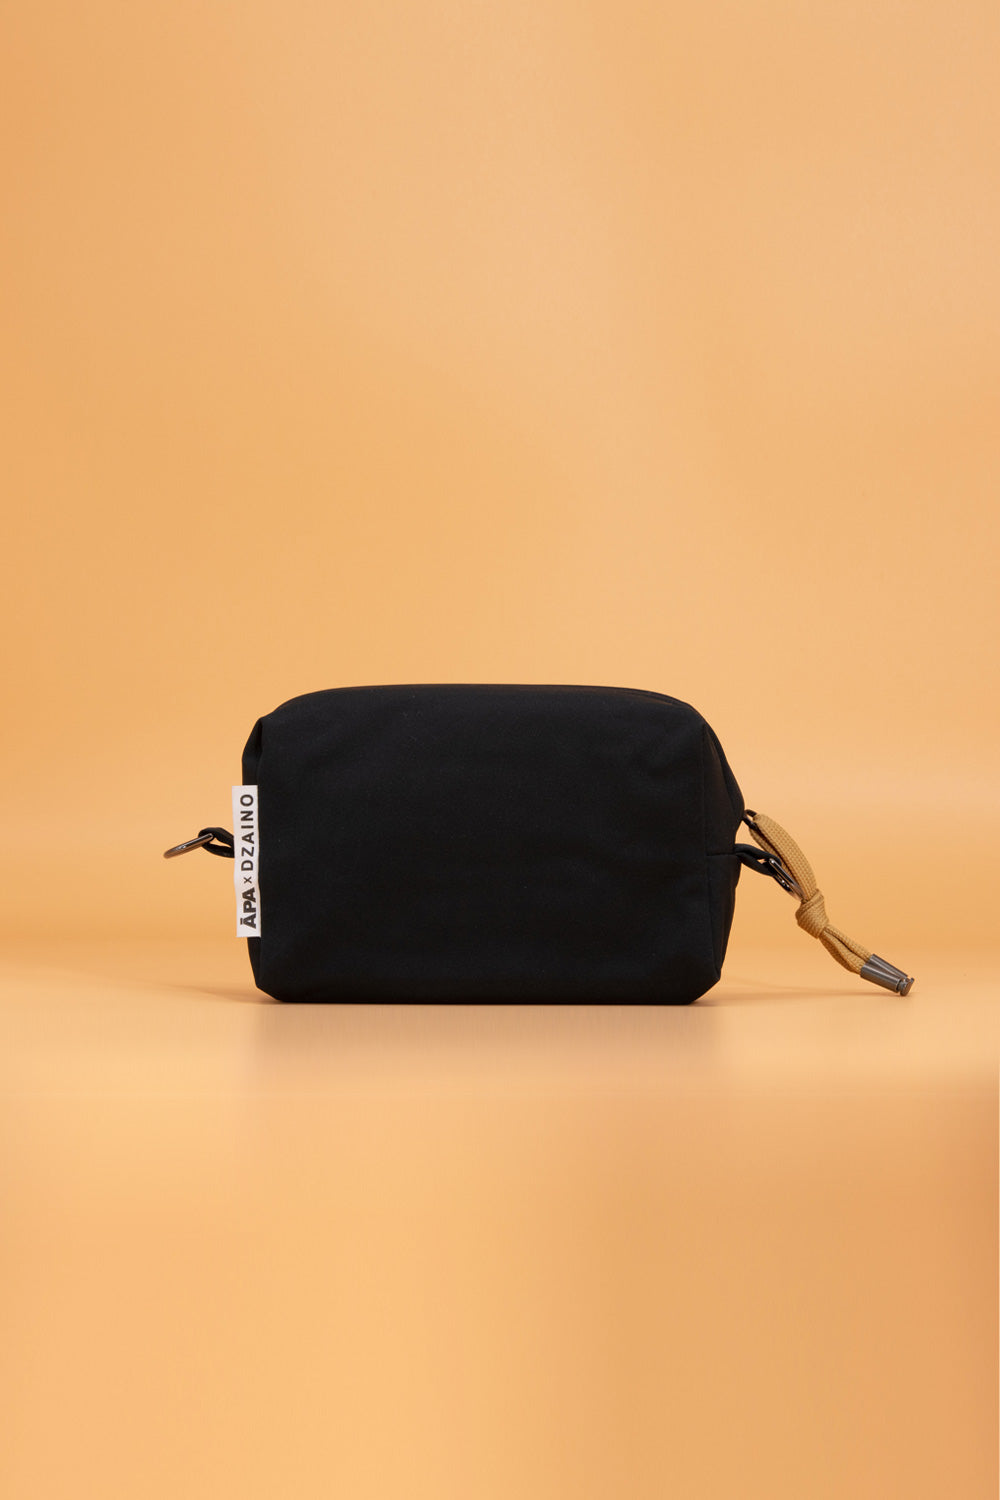 Travel Pouch SAMPLE Midnight Black